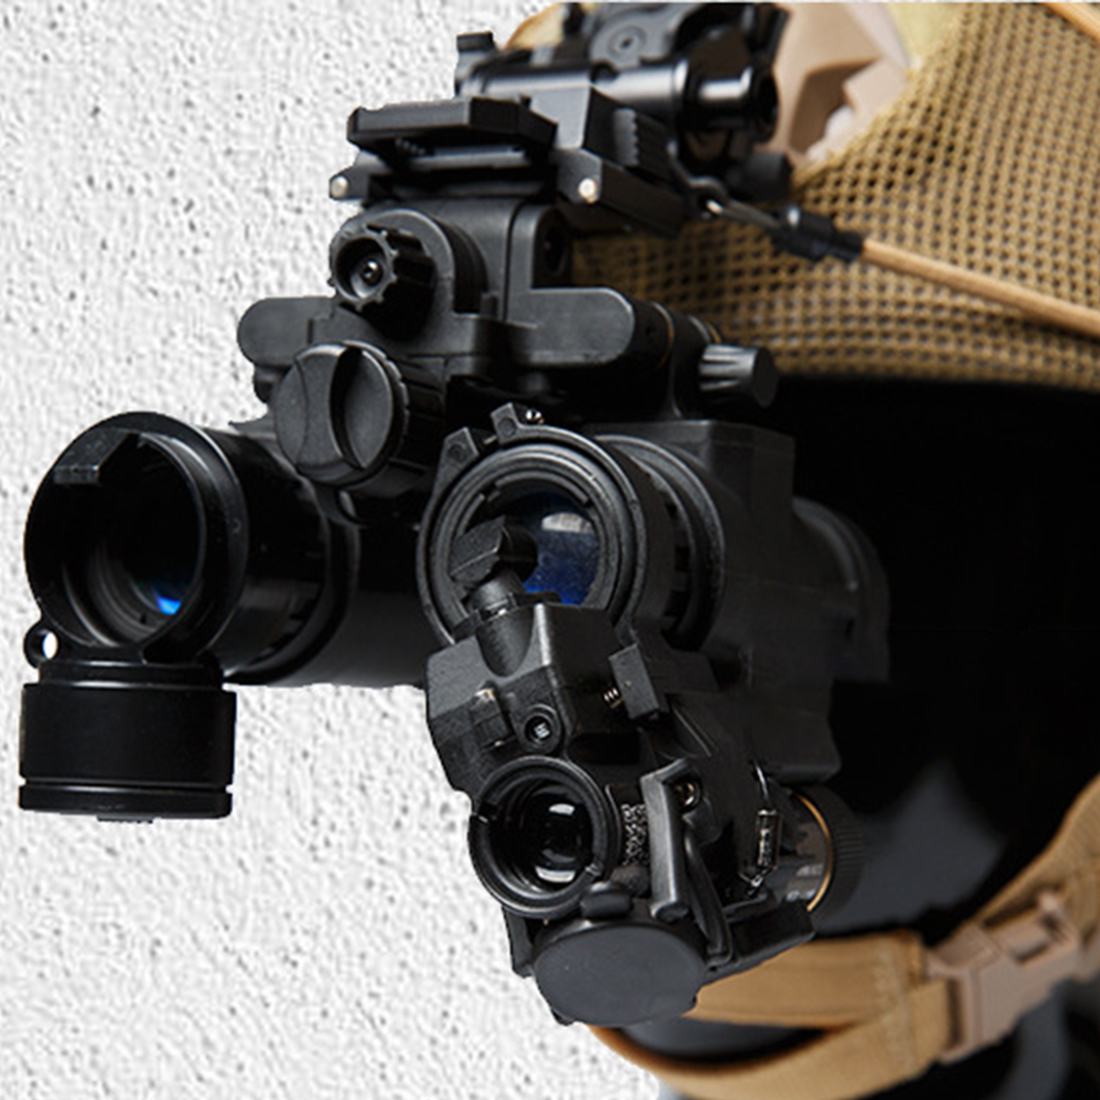 1:1 FMA PAS-29 Infrared Thermal Camera Model Night Vision Helmet Accessories Outdoor Tactical Equipment